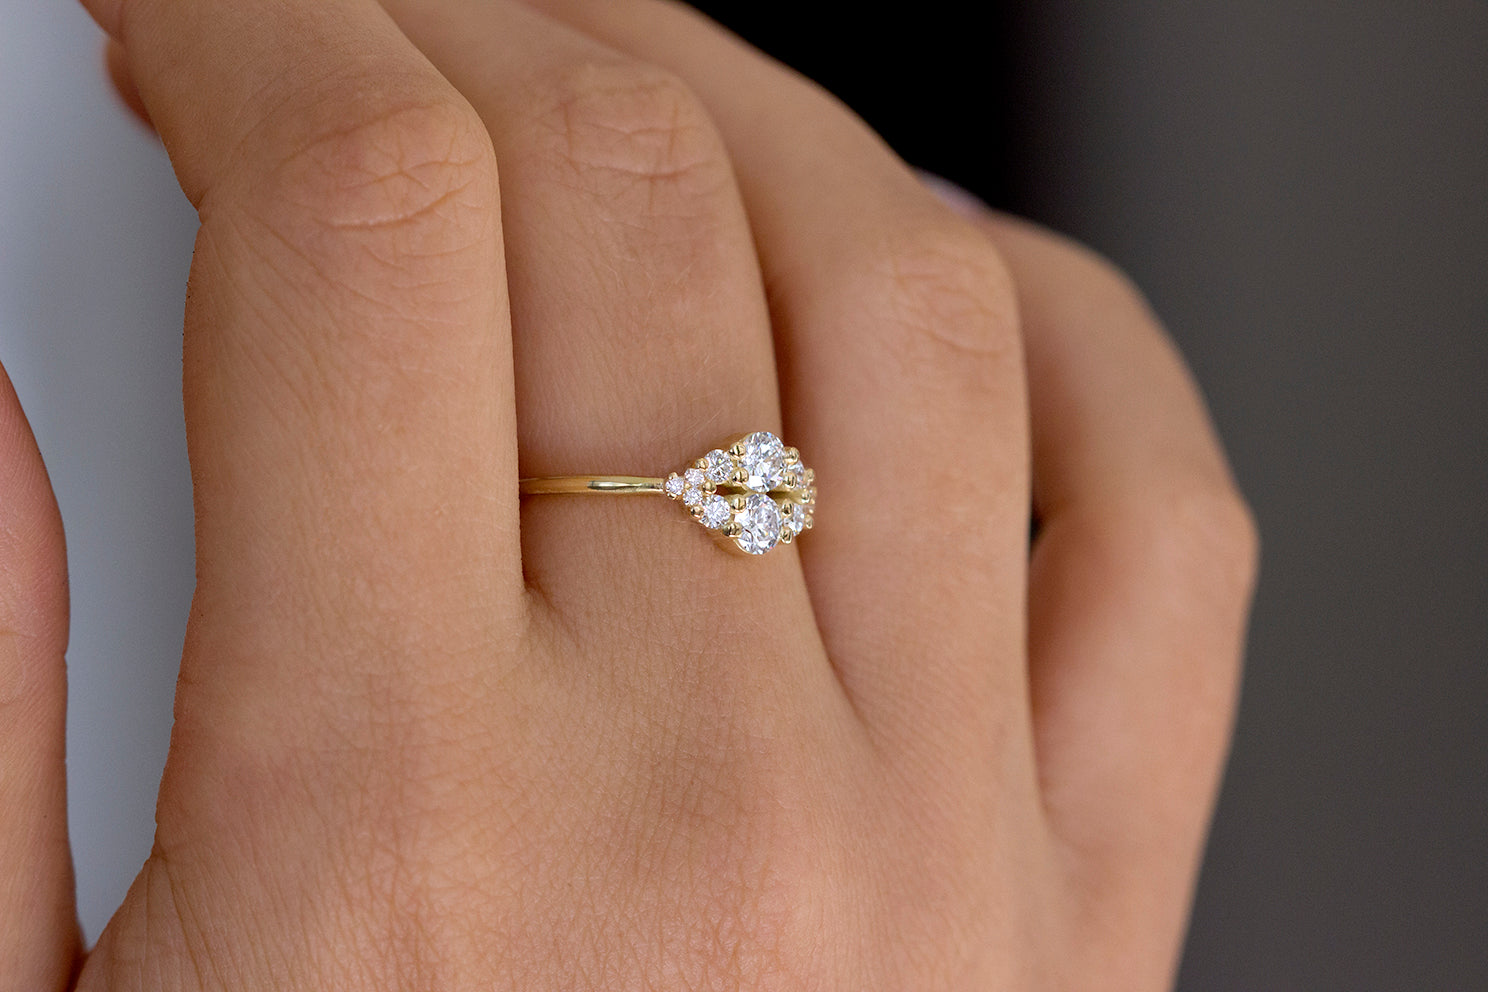 Round Diamond Cluster Ring On Middle Finger